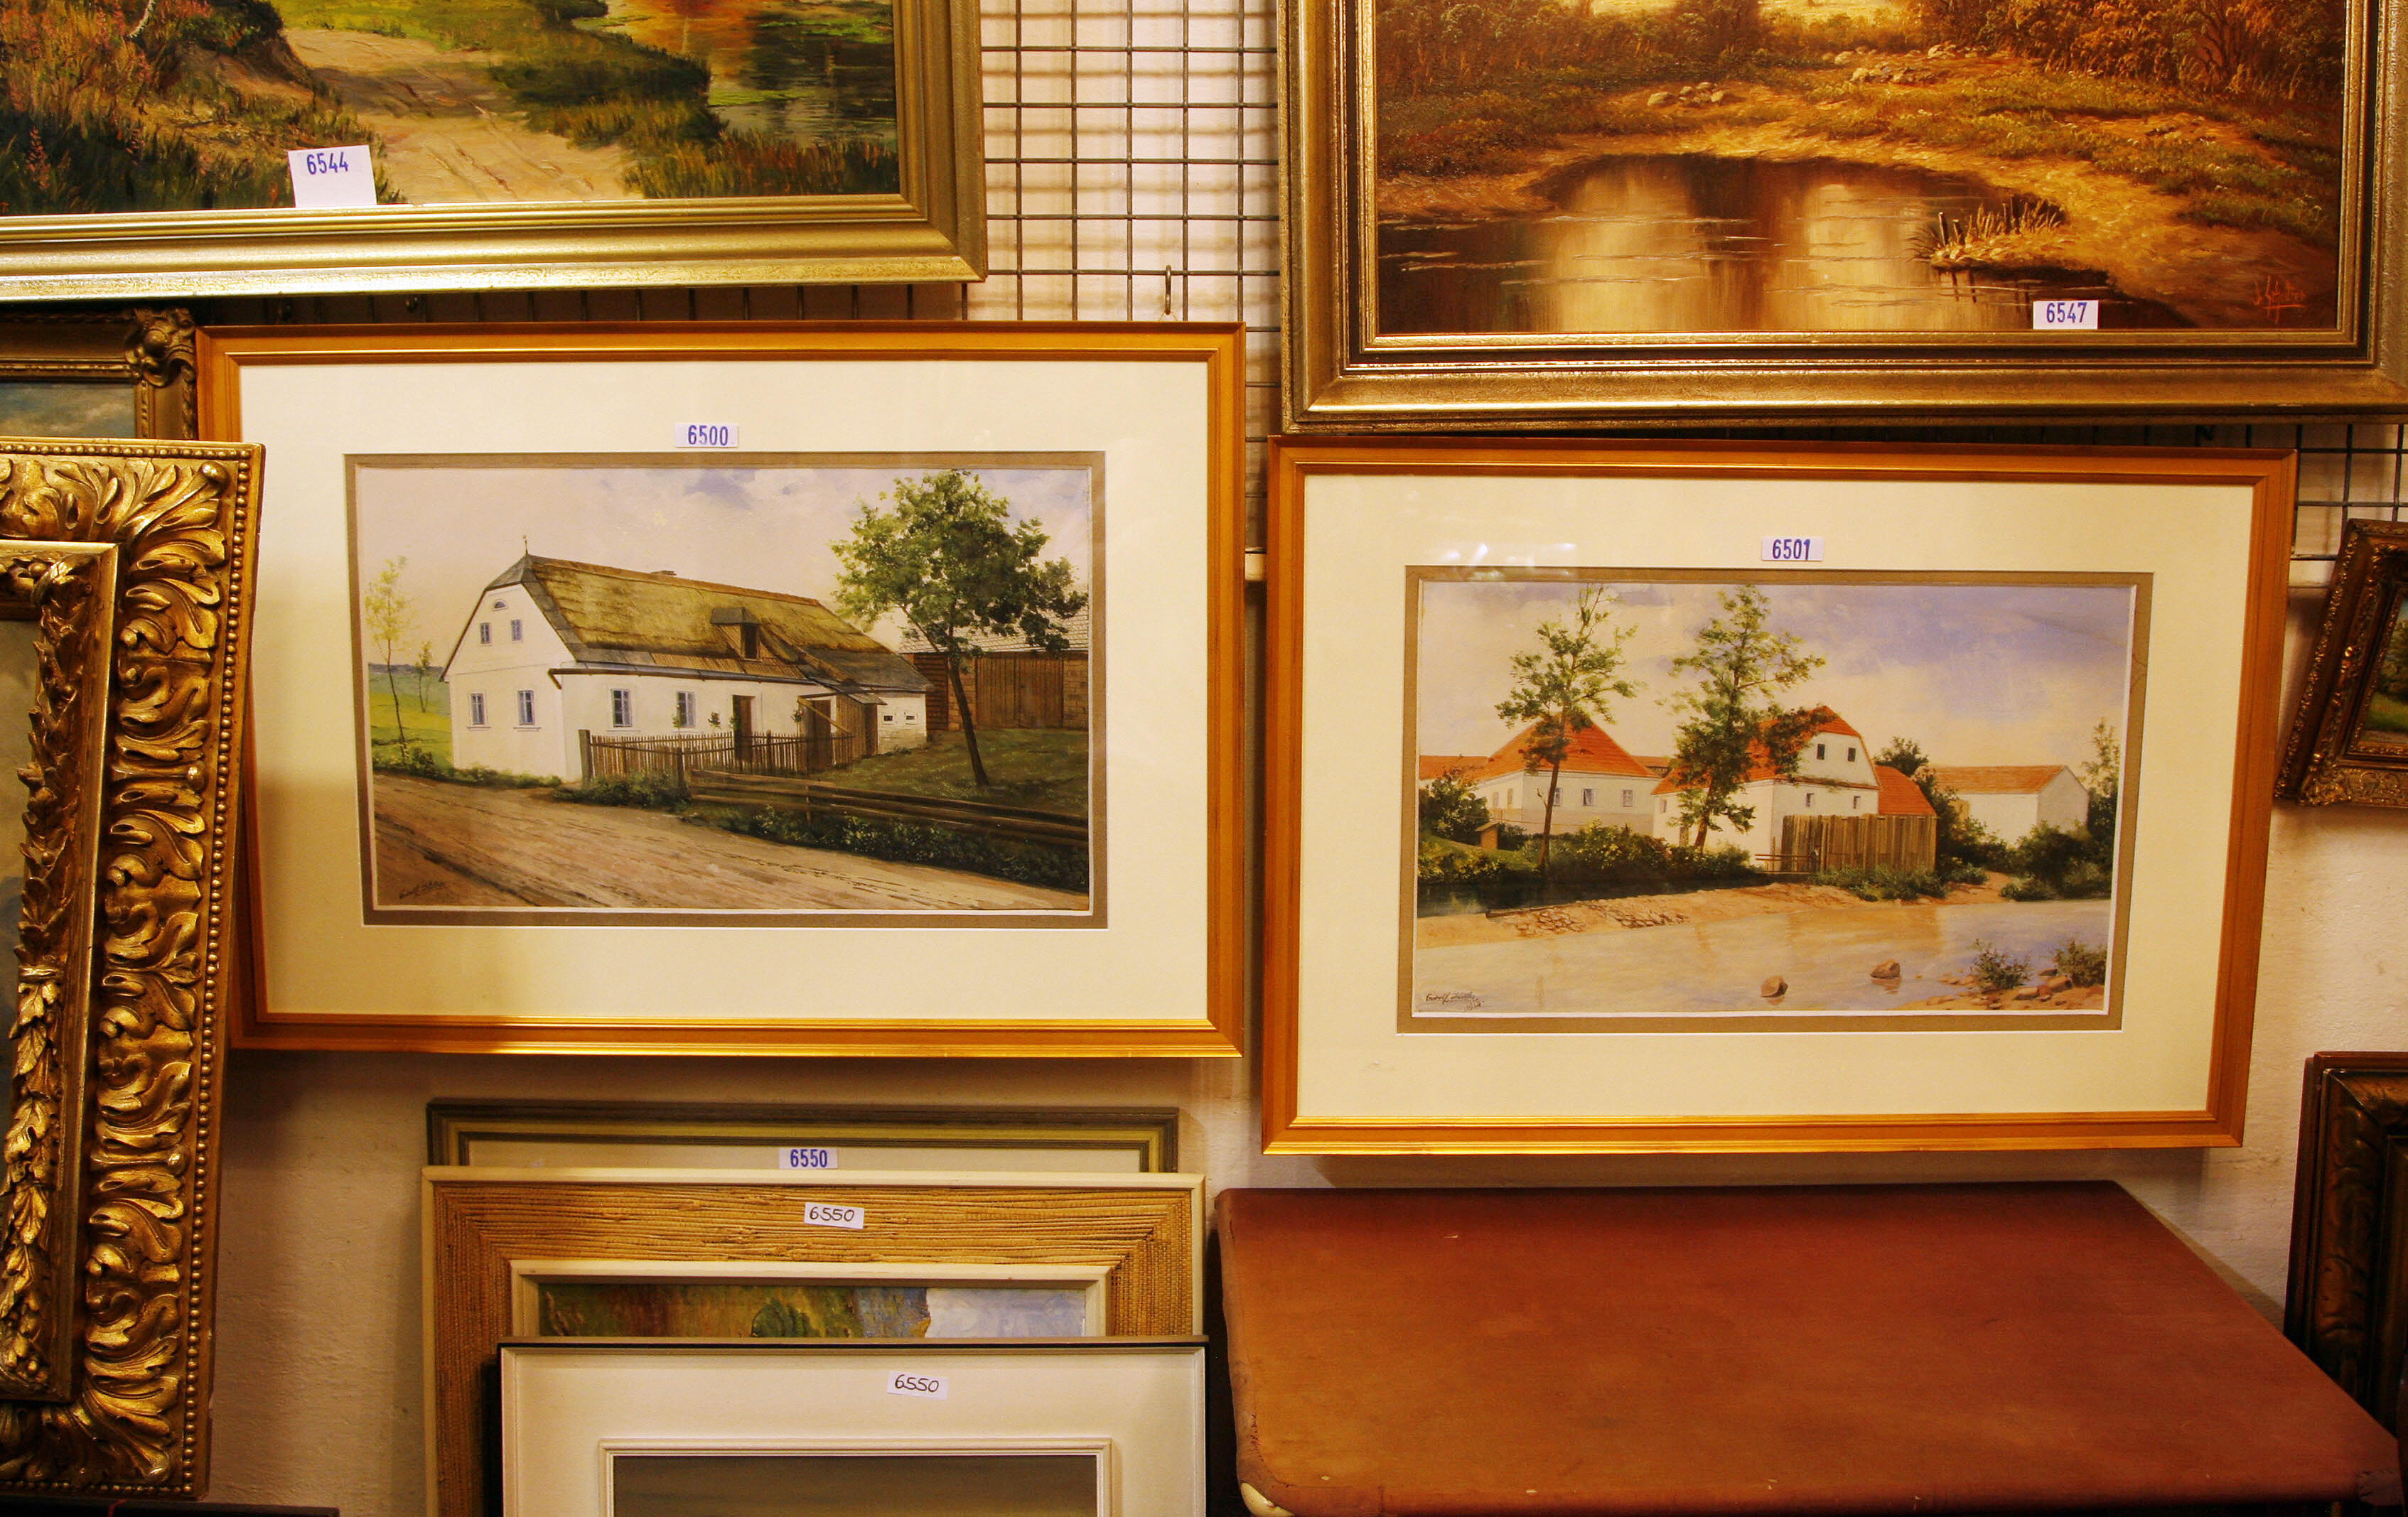 The two paintings attributed to Adolf Hitler